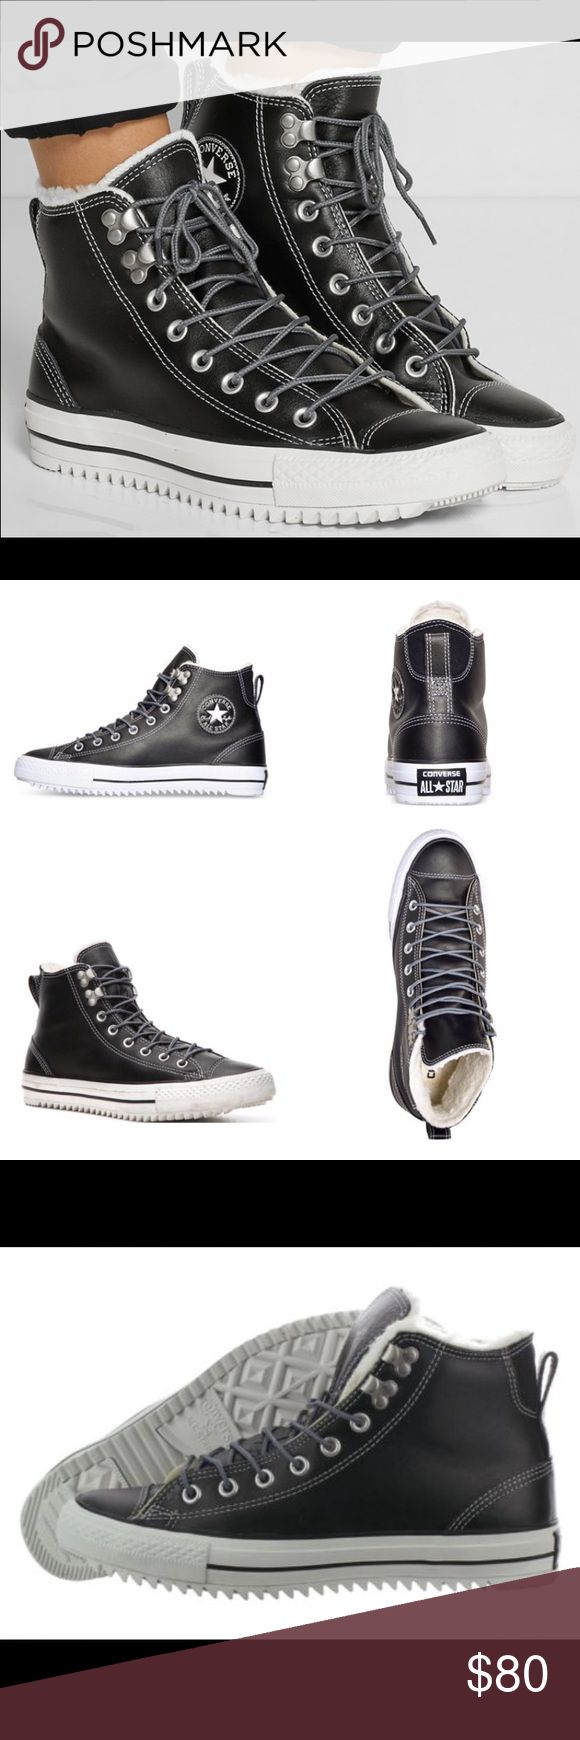 NWT Converse Fur/Leather High Top-NO TRADING NO TRADING. I WILL IGNORE ALL LOWBALL OFFERS. Size 5 Mens/ 7 Women's. Third Picture shows sizing in shoe.  These black Chuck Taylor All Star Hiker's combine the best of both worlds, sneakers and boots. With a high top upper and fleece lining the classic lace-up sneaker boot has been transformed into a stylin' street shoe with traction and warmth! Black leather upper Chuck Taylor All Star logo patch Fleece lining Vulcanized lugged rubber sole…